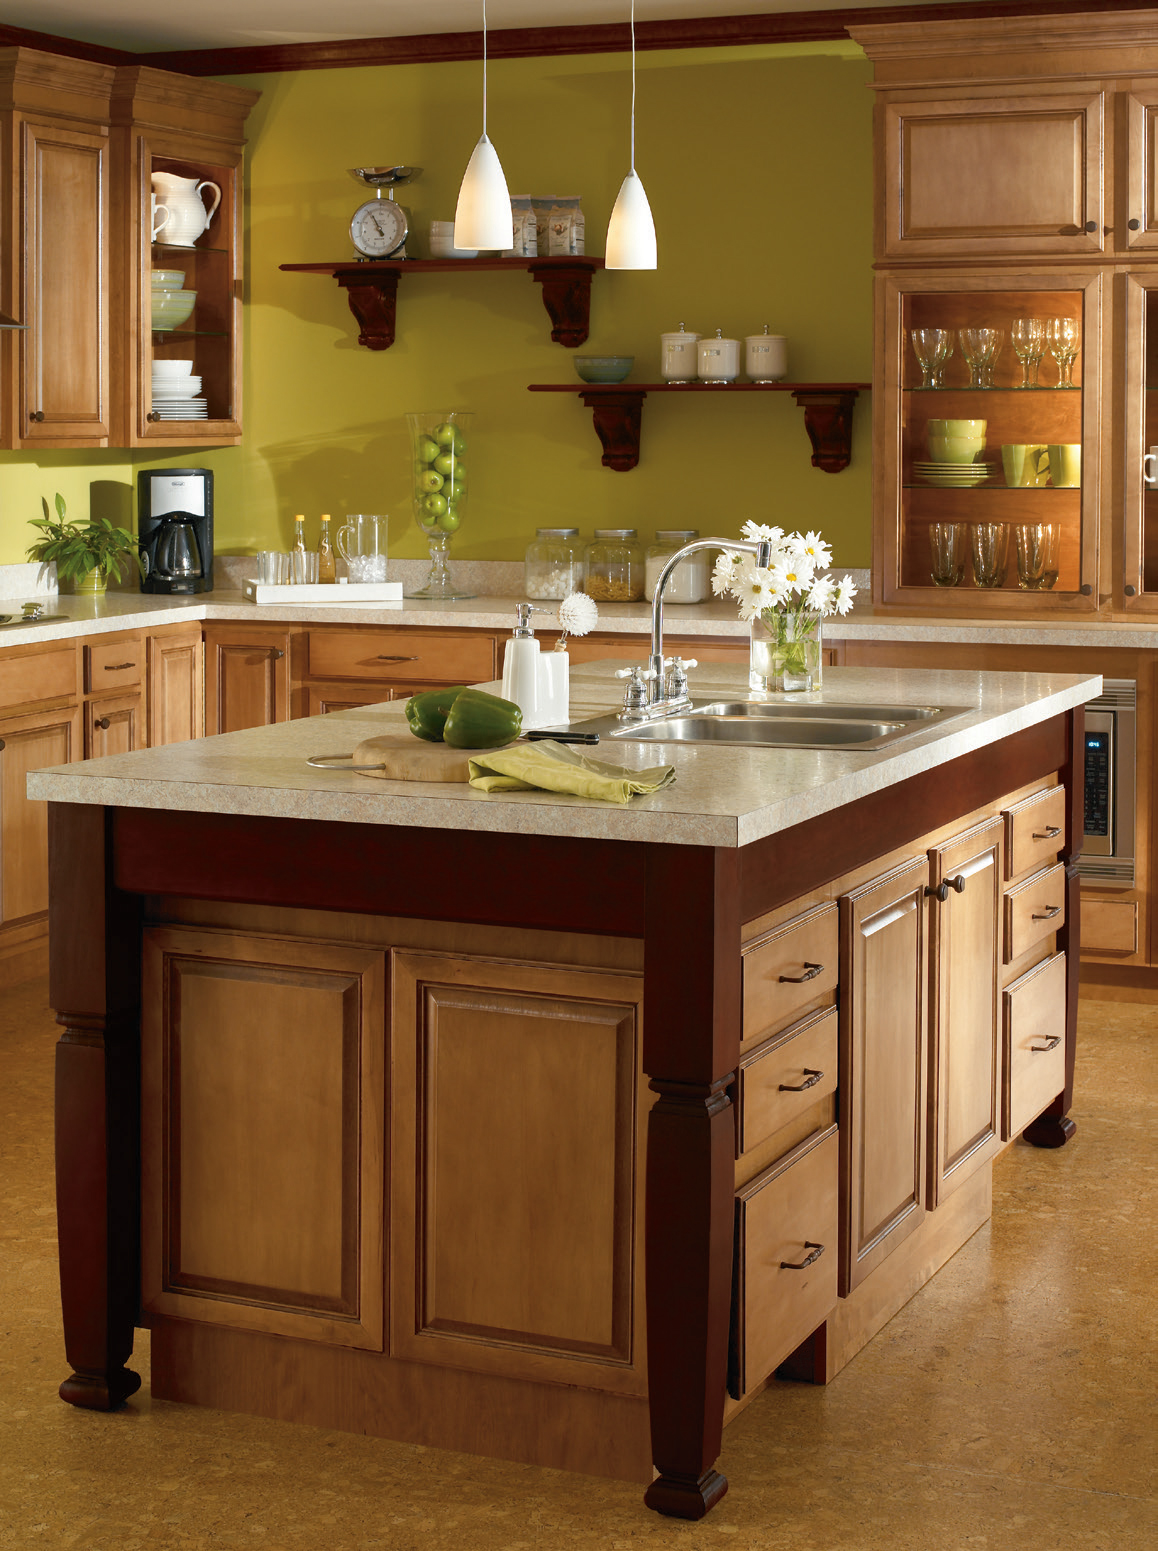 saddlebrwon aristokraft cabinets with white countertop matched with greenyellow wall for kitchen decor ideas